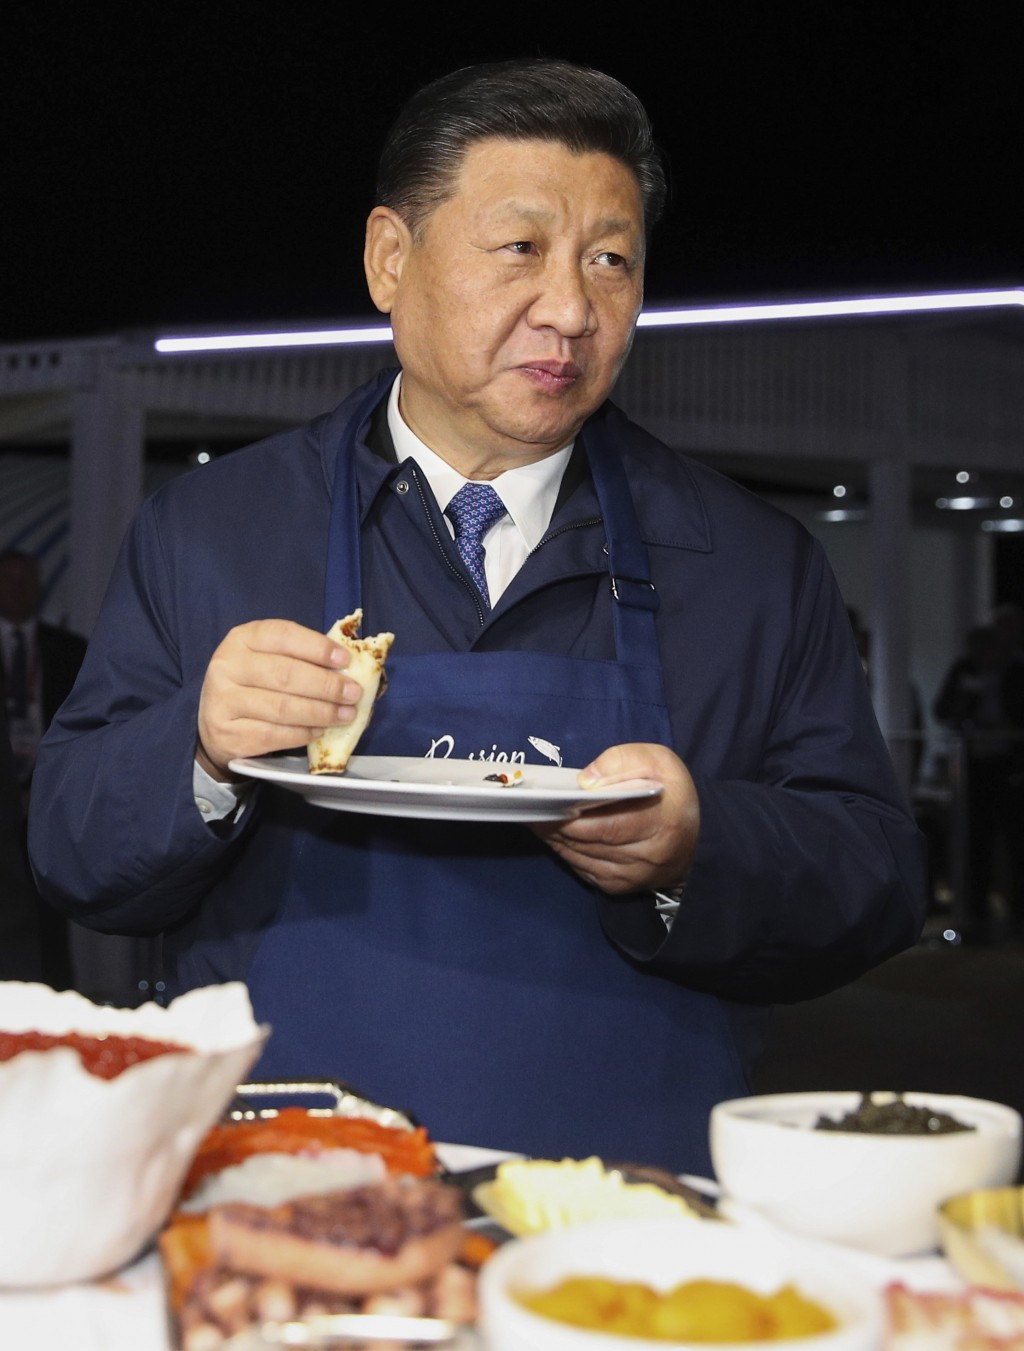 Chinese President Xi Jinping tastes food, as he and Russian President Vladimir Putin visit an exhibition during the Eastern Economic Forum in Vladivos